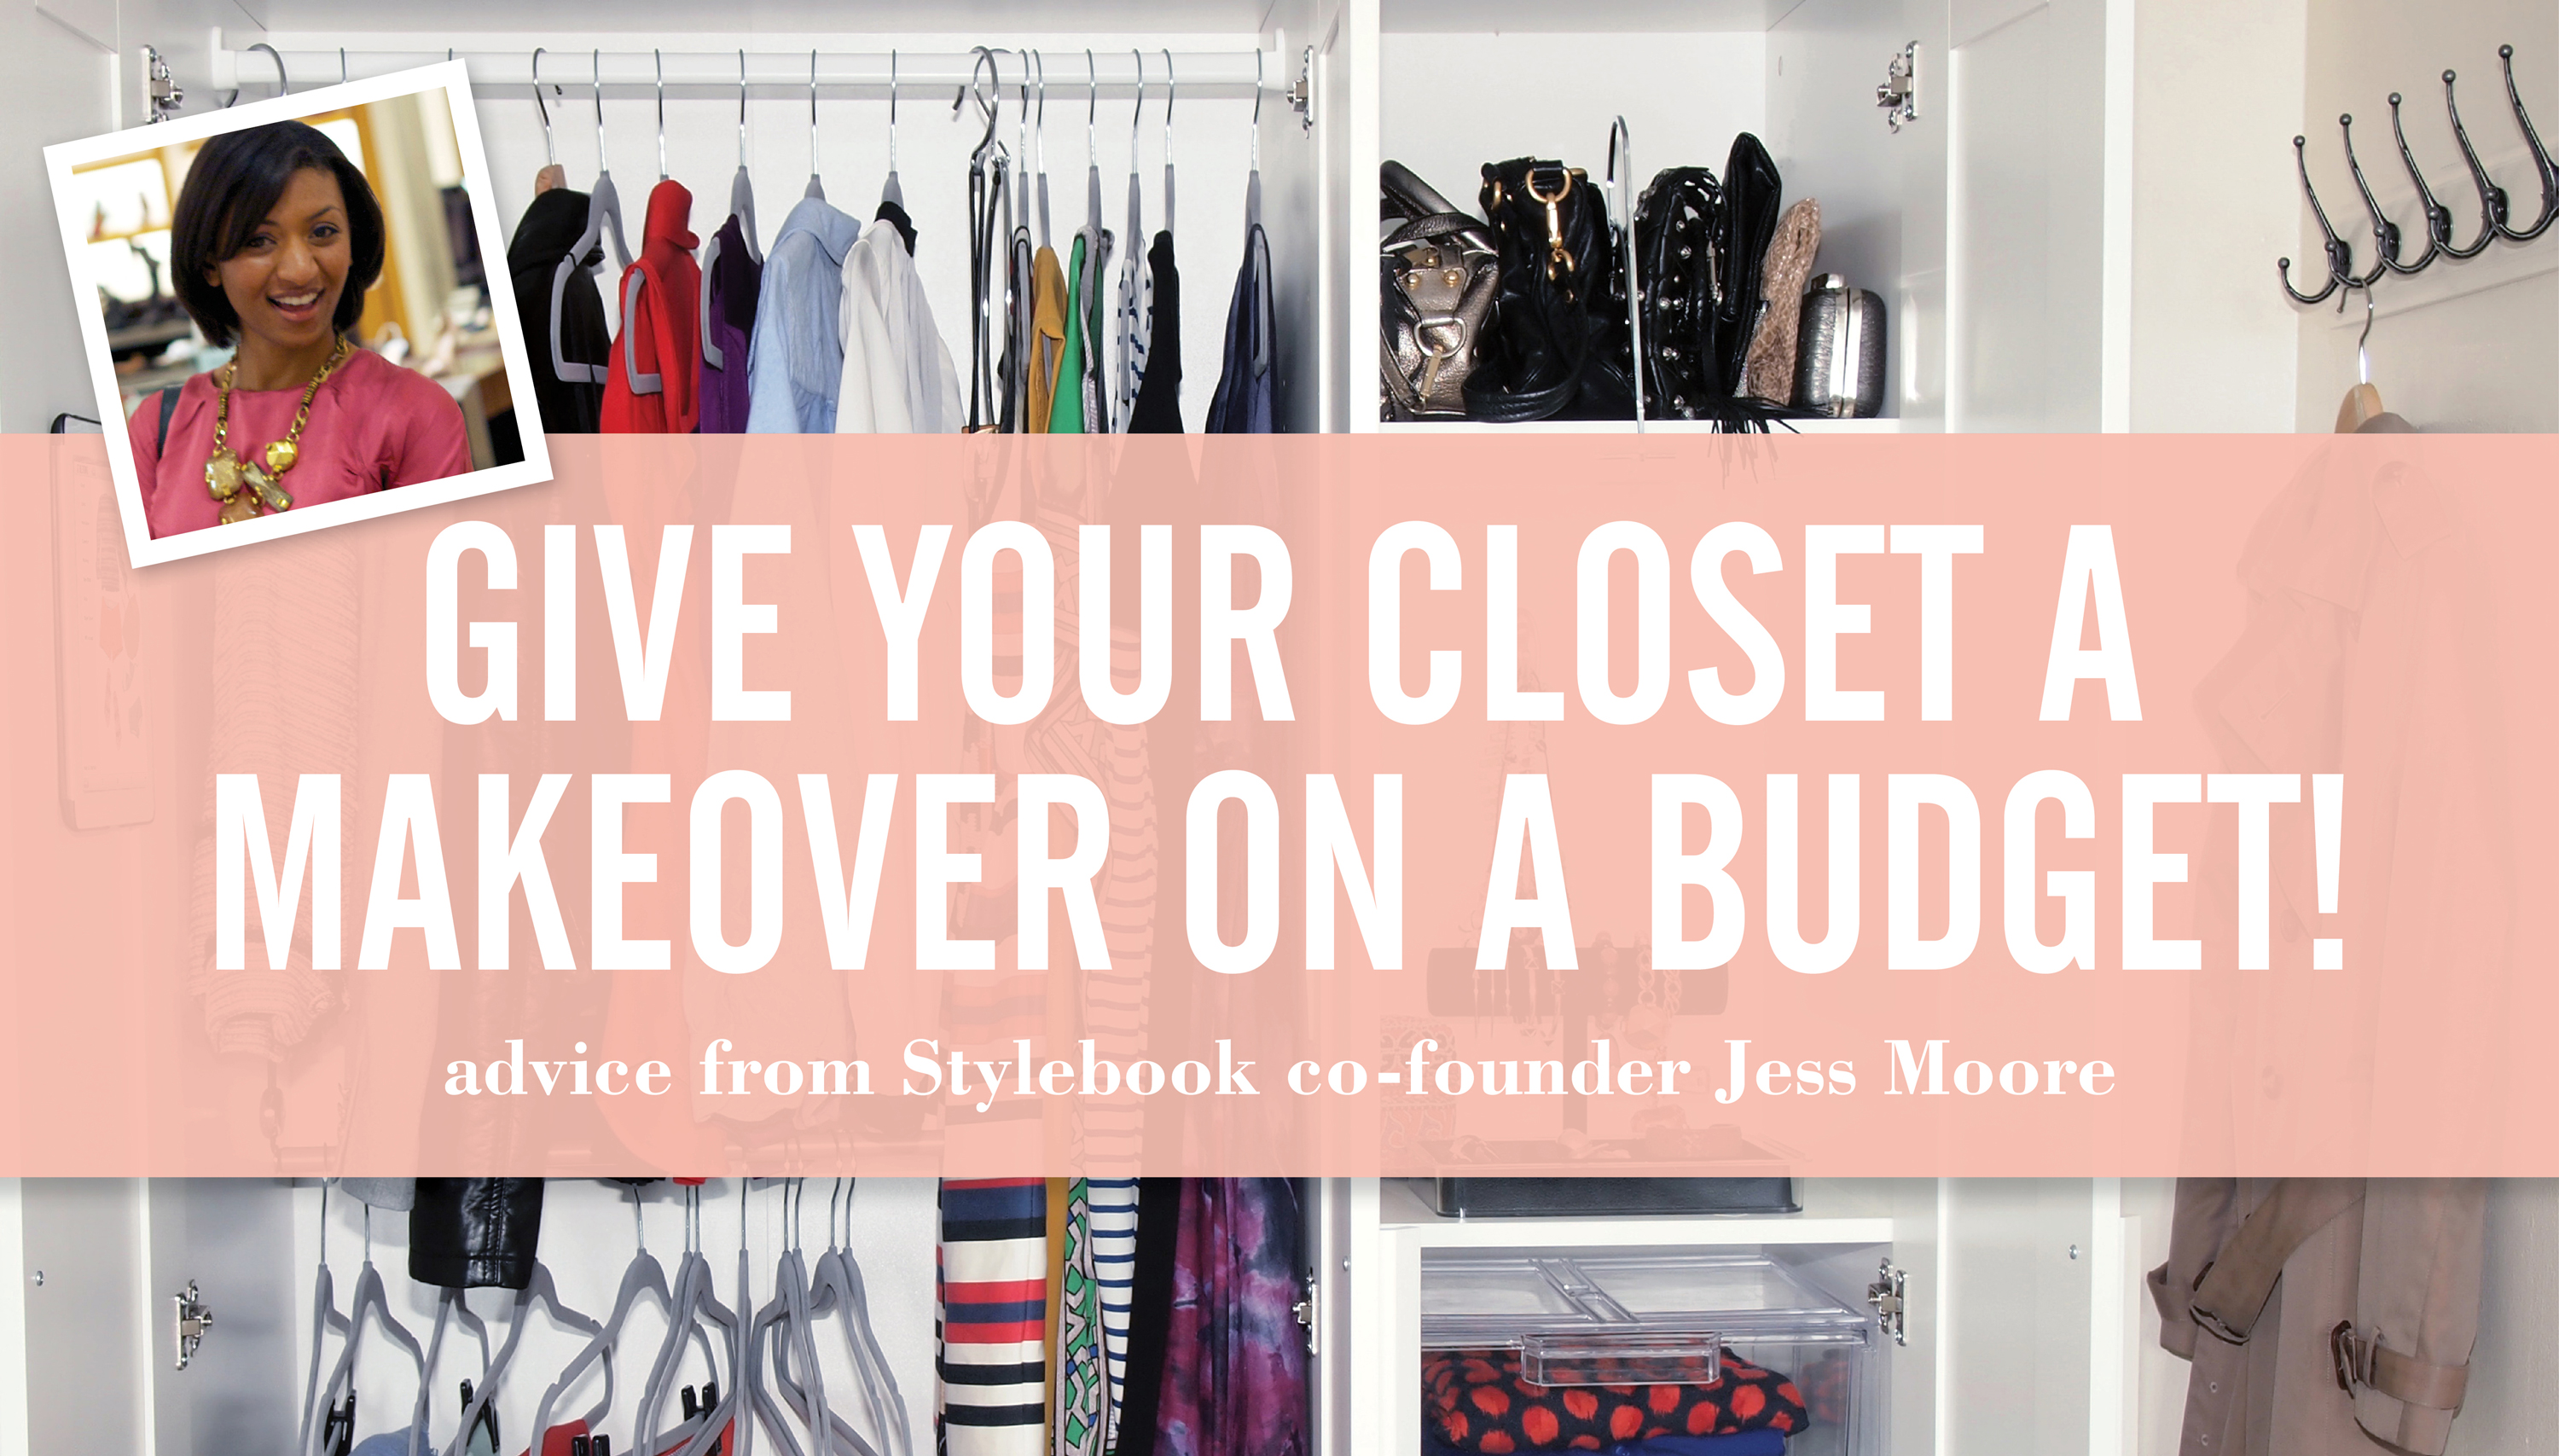 9 Tips To Make Over Your Closet On A Budget